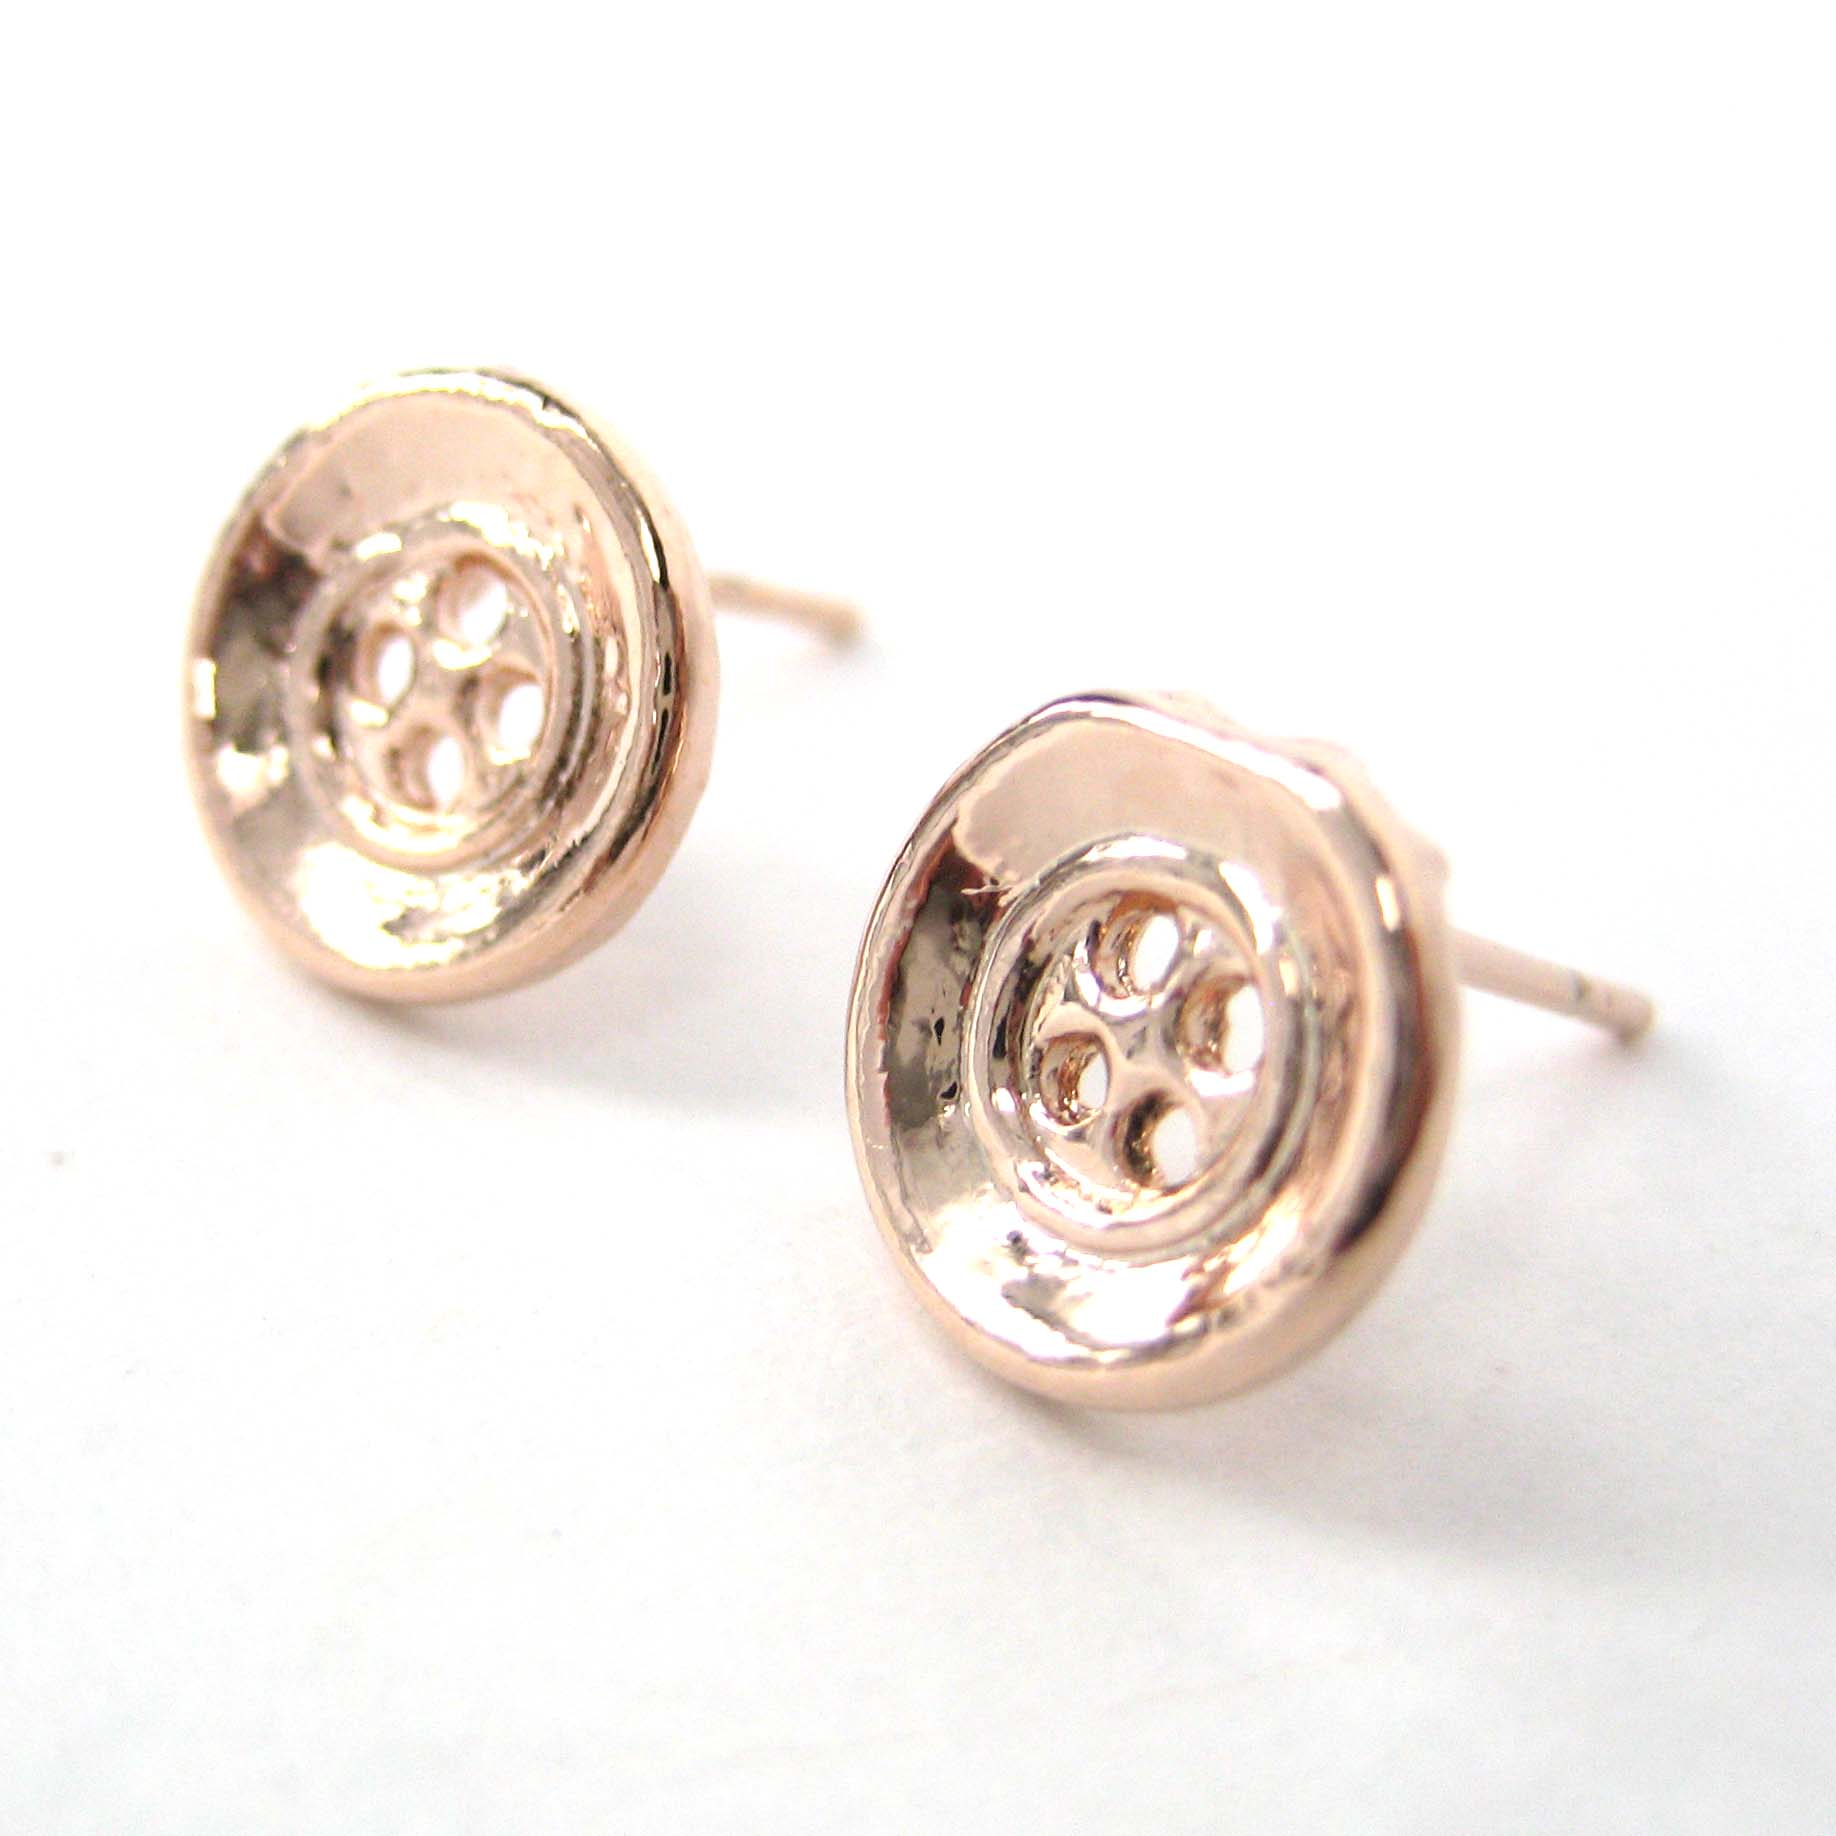 7e0e721d1 Dotoly Plus | Small Round Button Stud Earrings in Rose Gold | Online ...